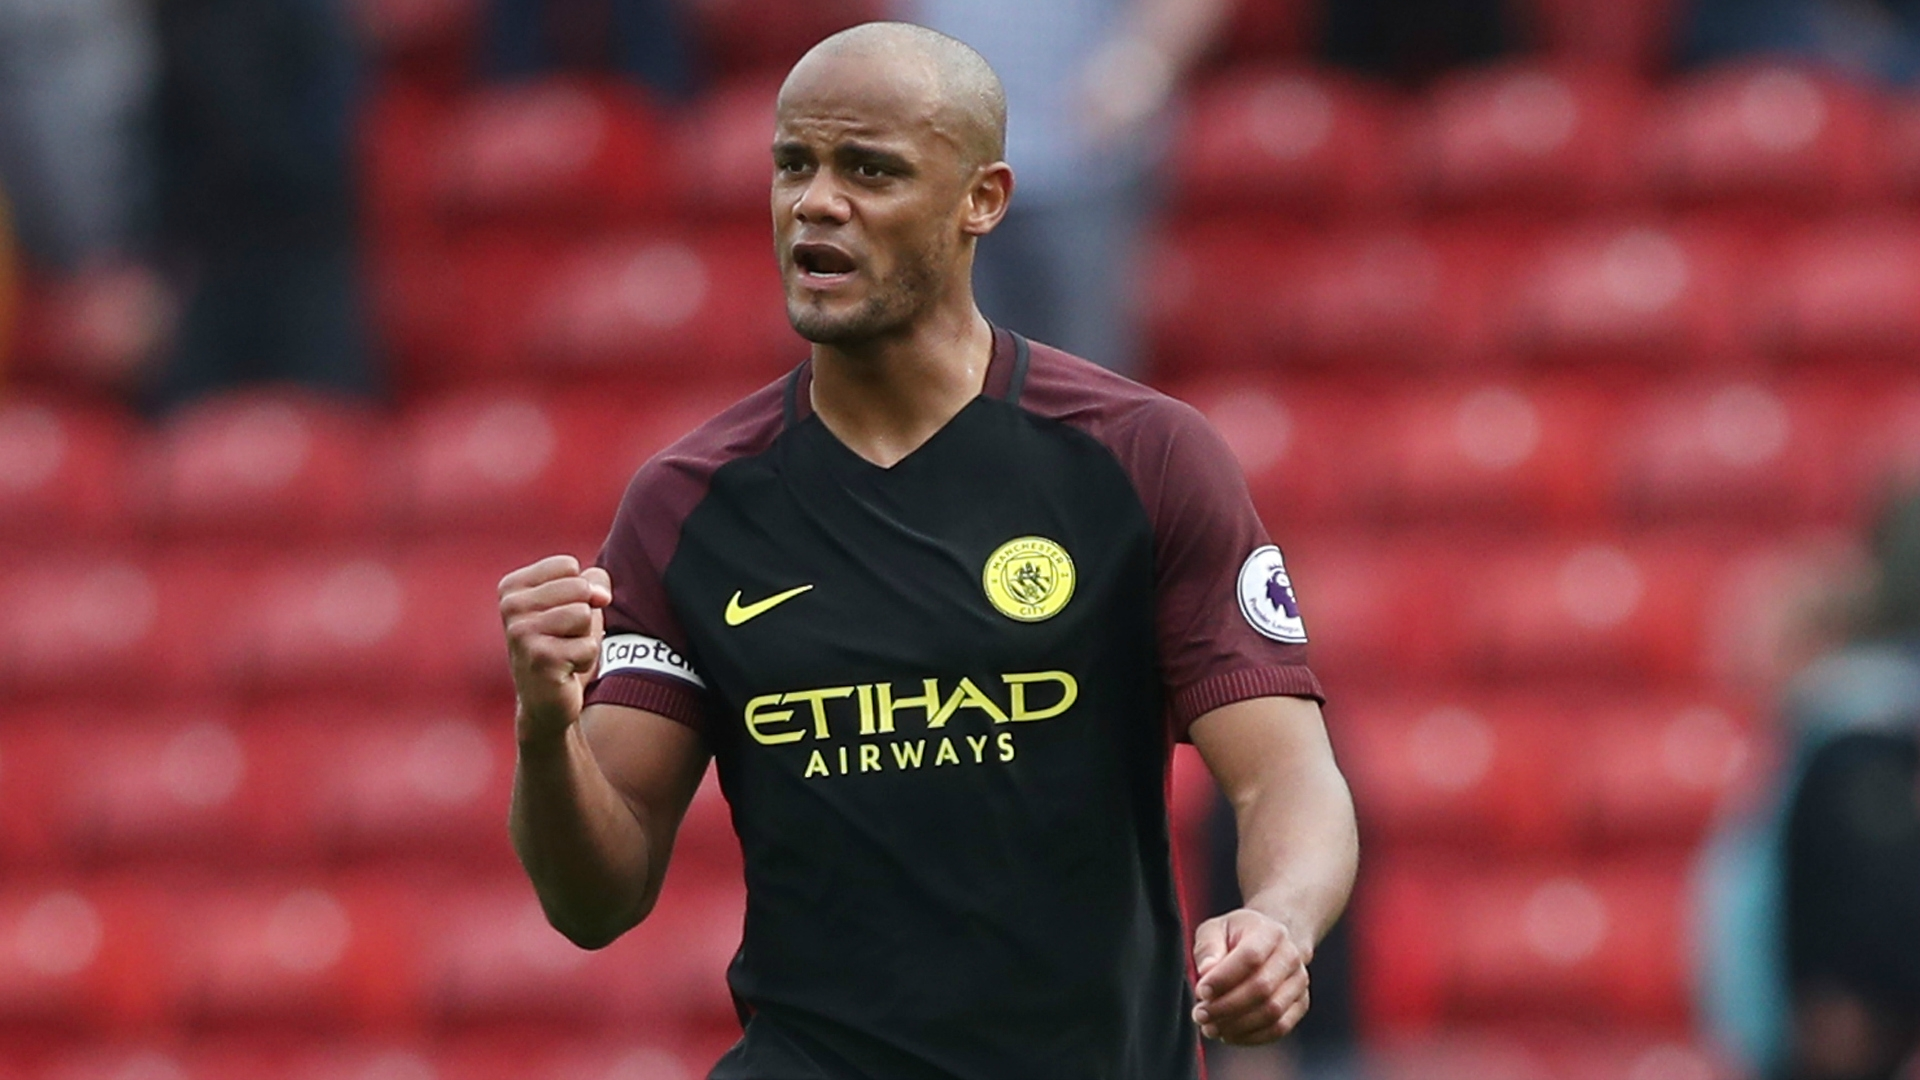 Vincent Kompany has yet to win an important trophy with the Belgium national team